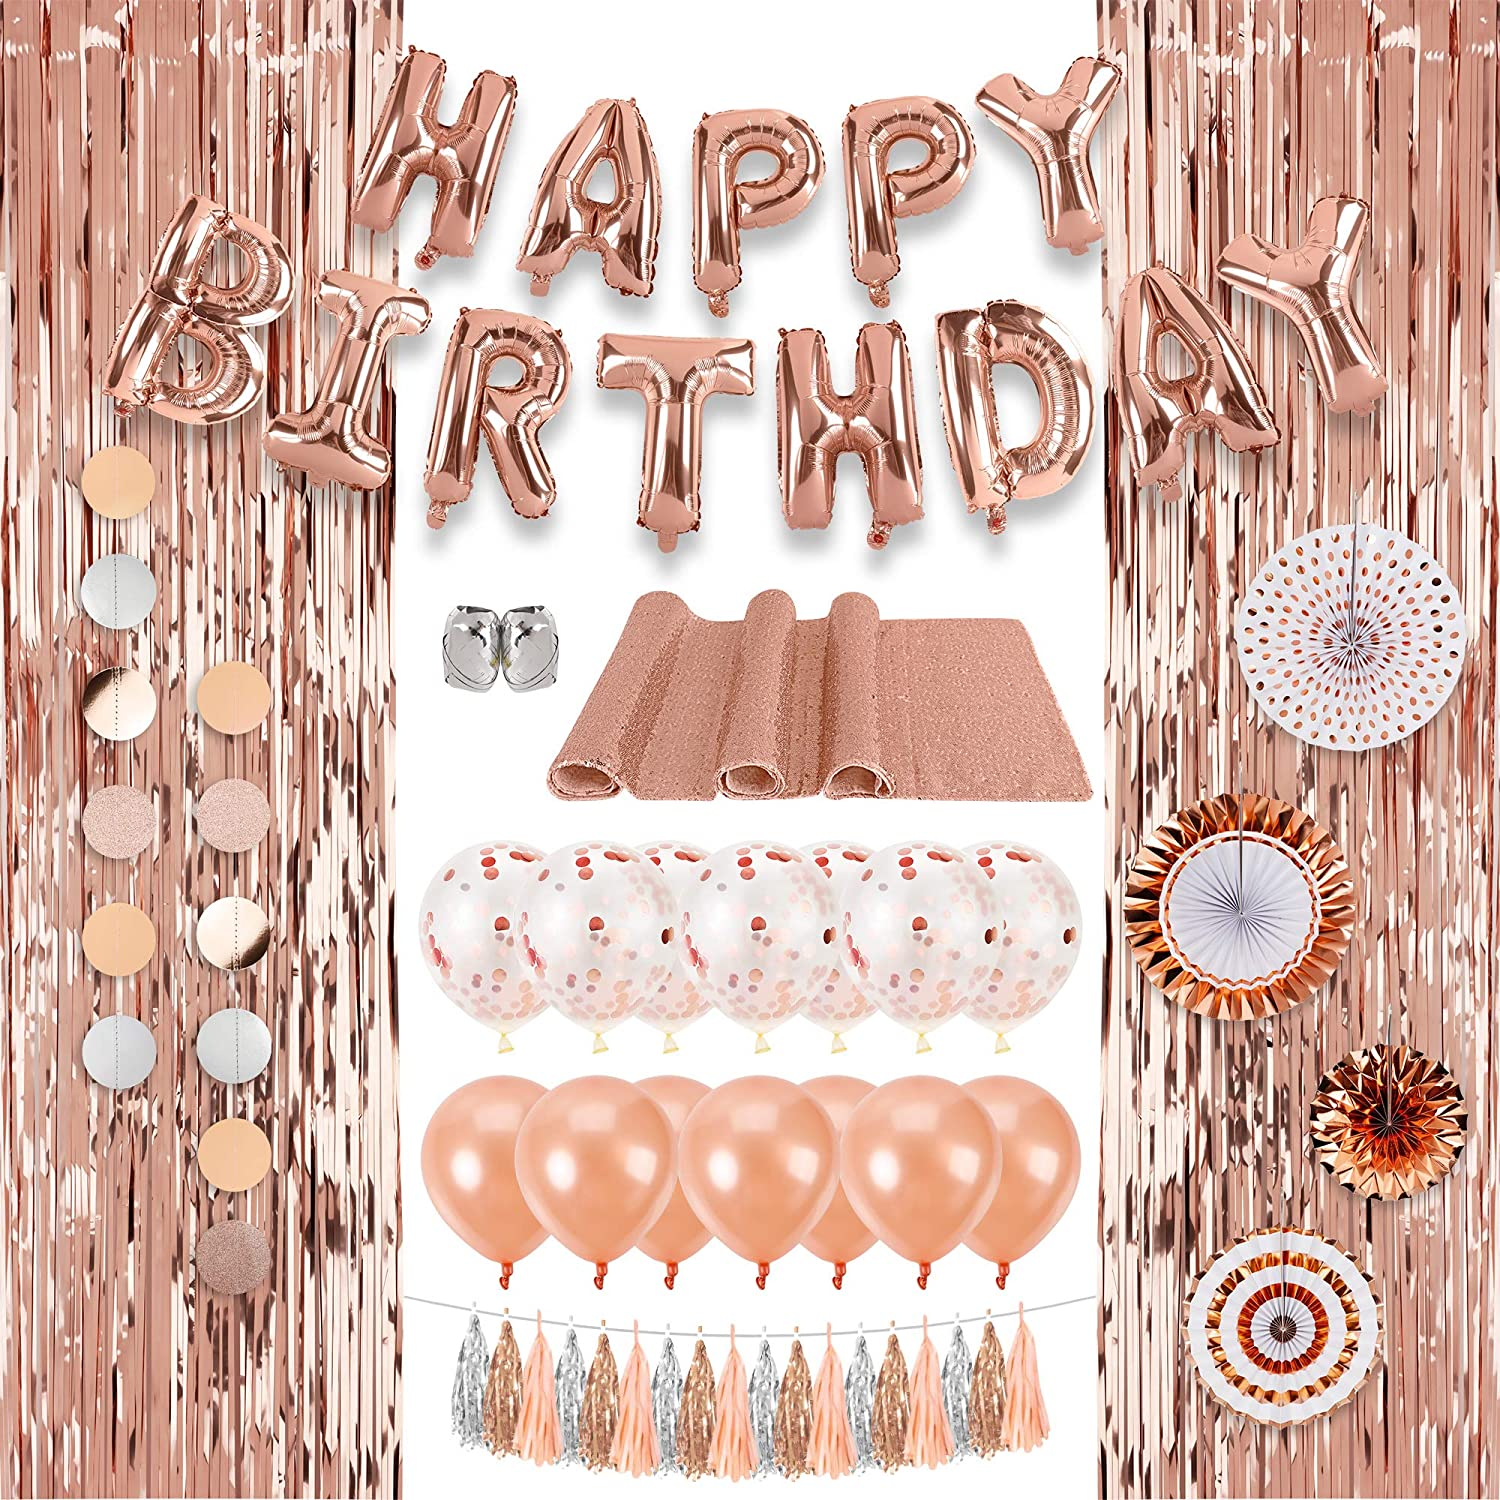 Decorlife Rose Gold Party Decorations for Birthday, Rose Gold Party Decor Kit for Girls, Total 37PCS, Including Happy Birthday Banner, Sequin Table Runner, Rose Gold Balloons, Foil Fringe Curtains, Circle Dot Garlands, Tassels, Hanging Paper Fans, Foil Ribbons